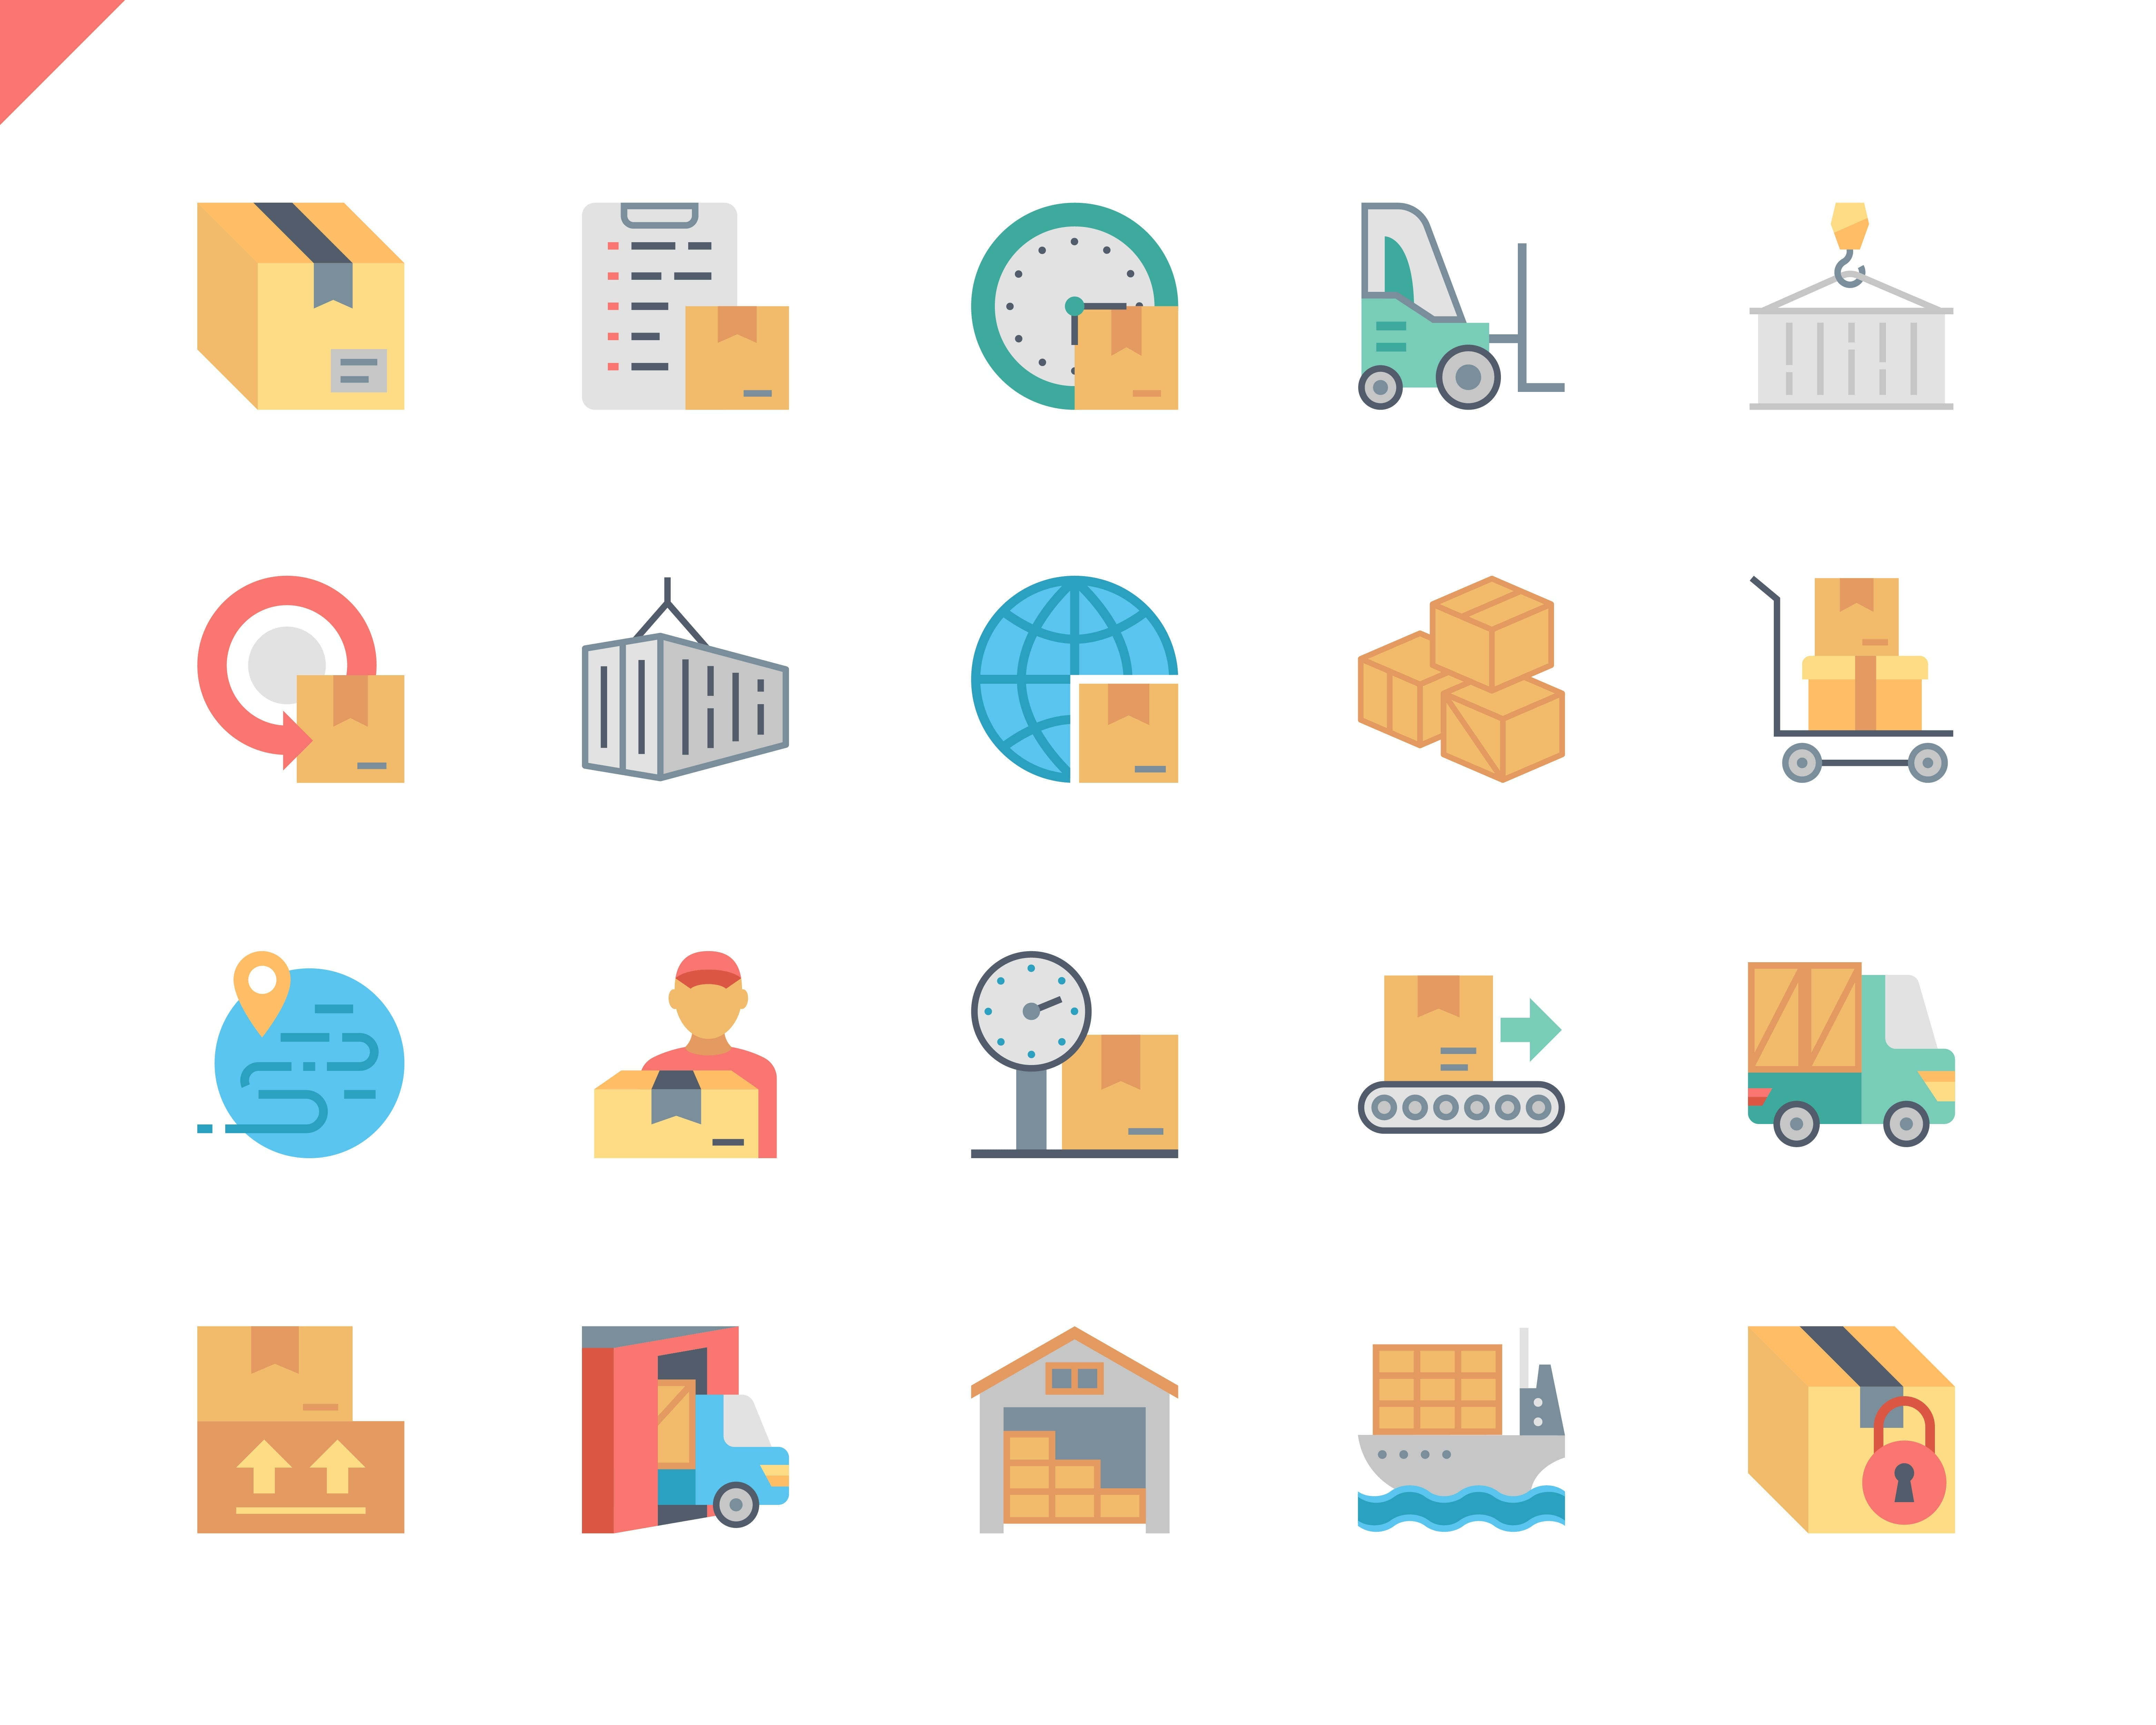 Simple Set Package Delivery Flat Icons for Website and Mobile Apps. Contains such Icons as Warehouse, Truck, Worldwide Shipping, Cargo. 48x48 Pixel Perfect. Vector illustration.